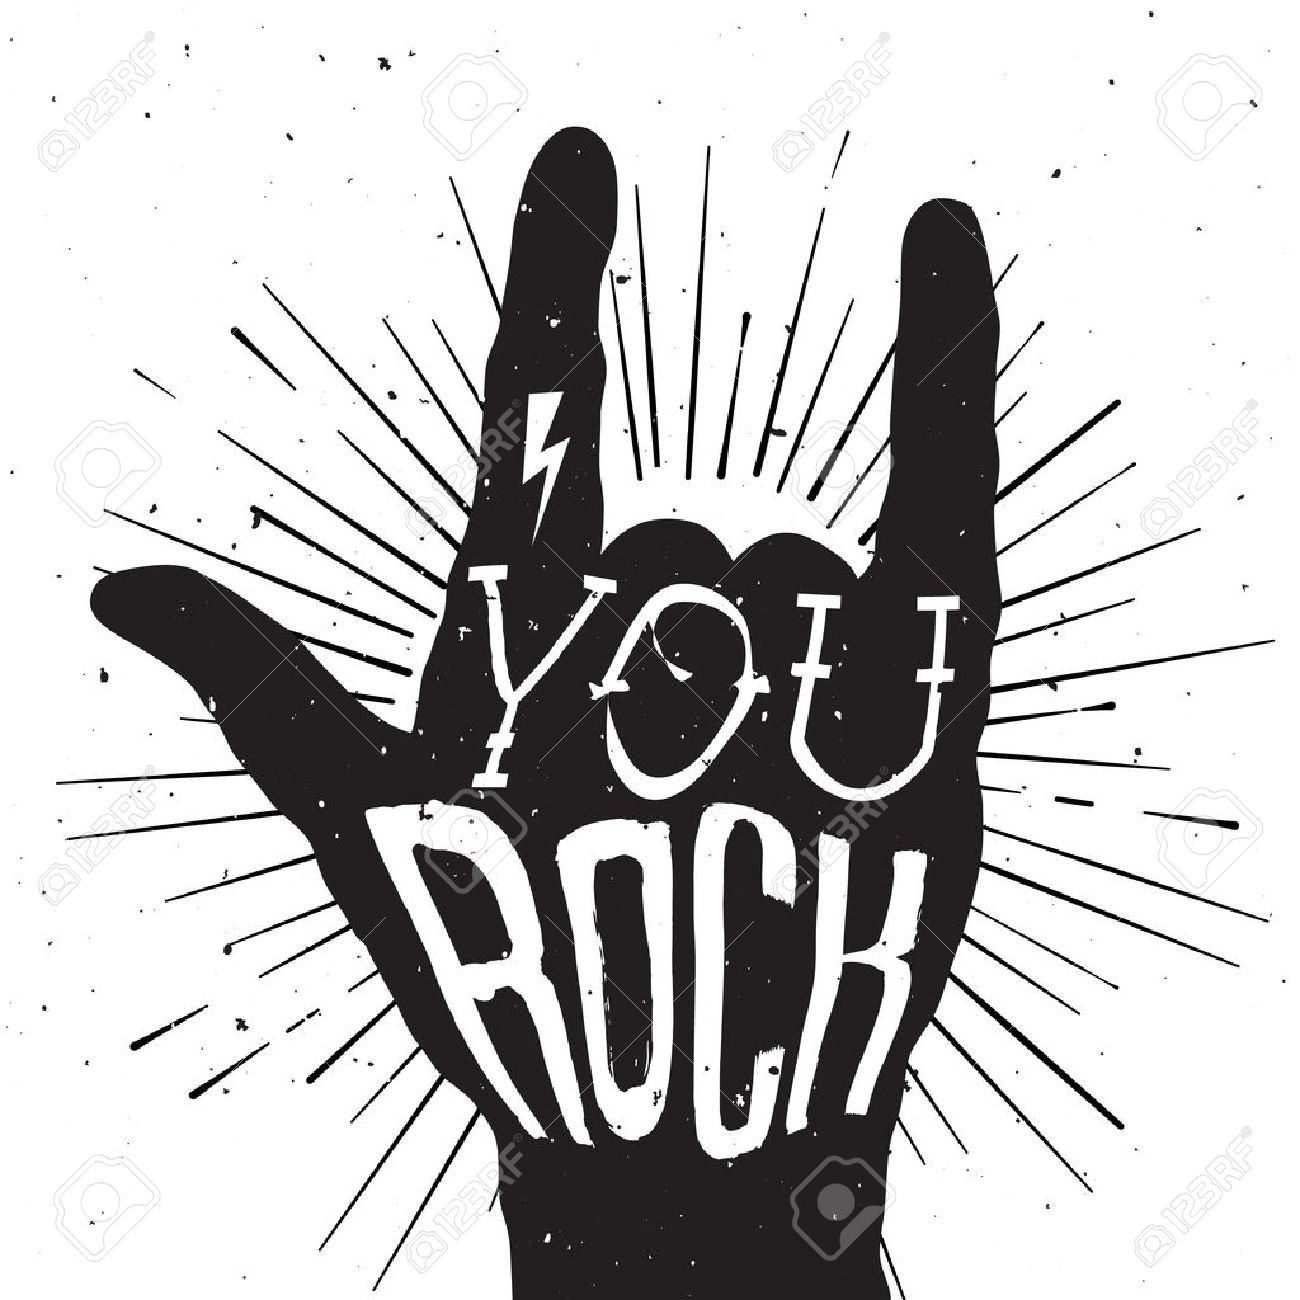 Rock and roll clipart black white graphic free download Rock and roll clipart black and white 4 » Clipart Station graphic free download